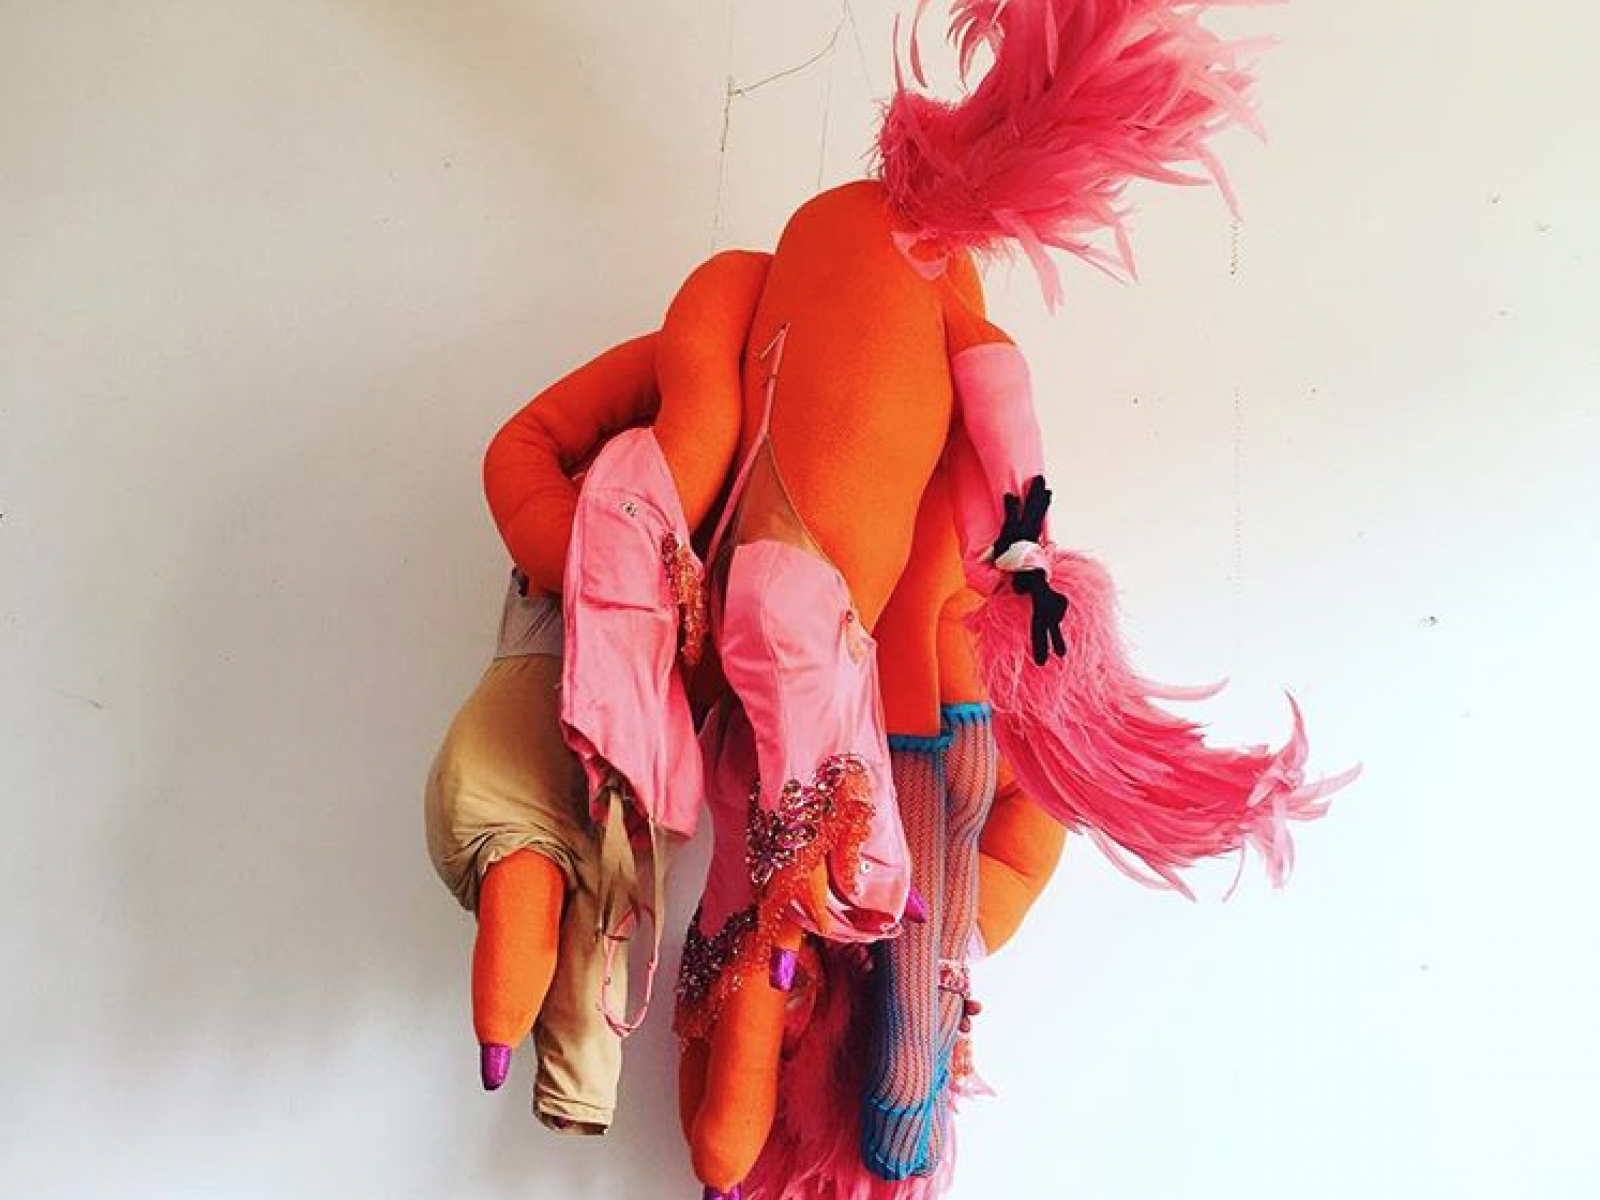 Pink and orange fabric sculpture against white background